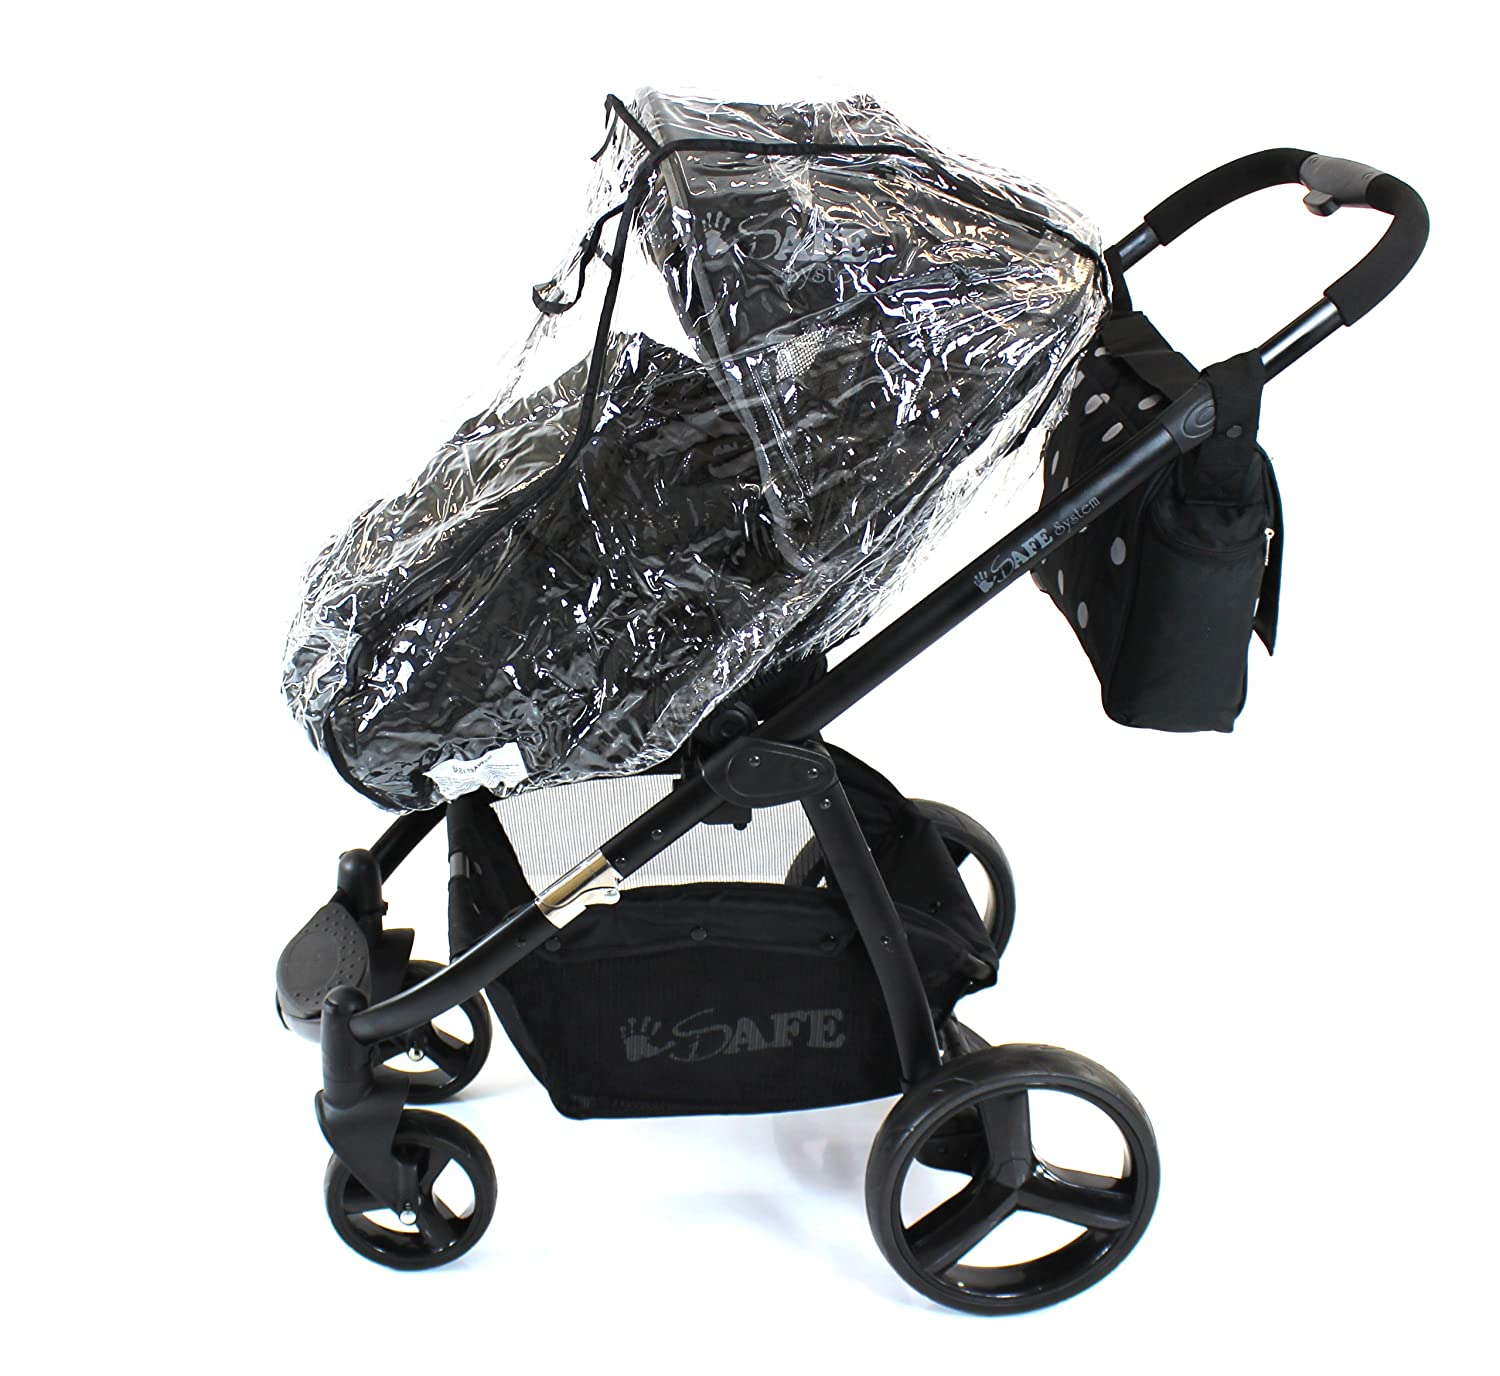 Baby Travel 2 in 1 Raincover to Fit Bugaboo Cameleon Stroller And Carrycot Mode for Newborn (Transparent) Baby Travel® Dreami Type RC